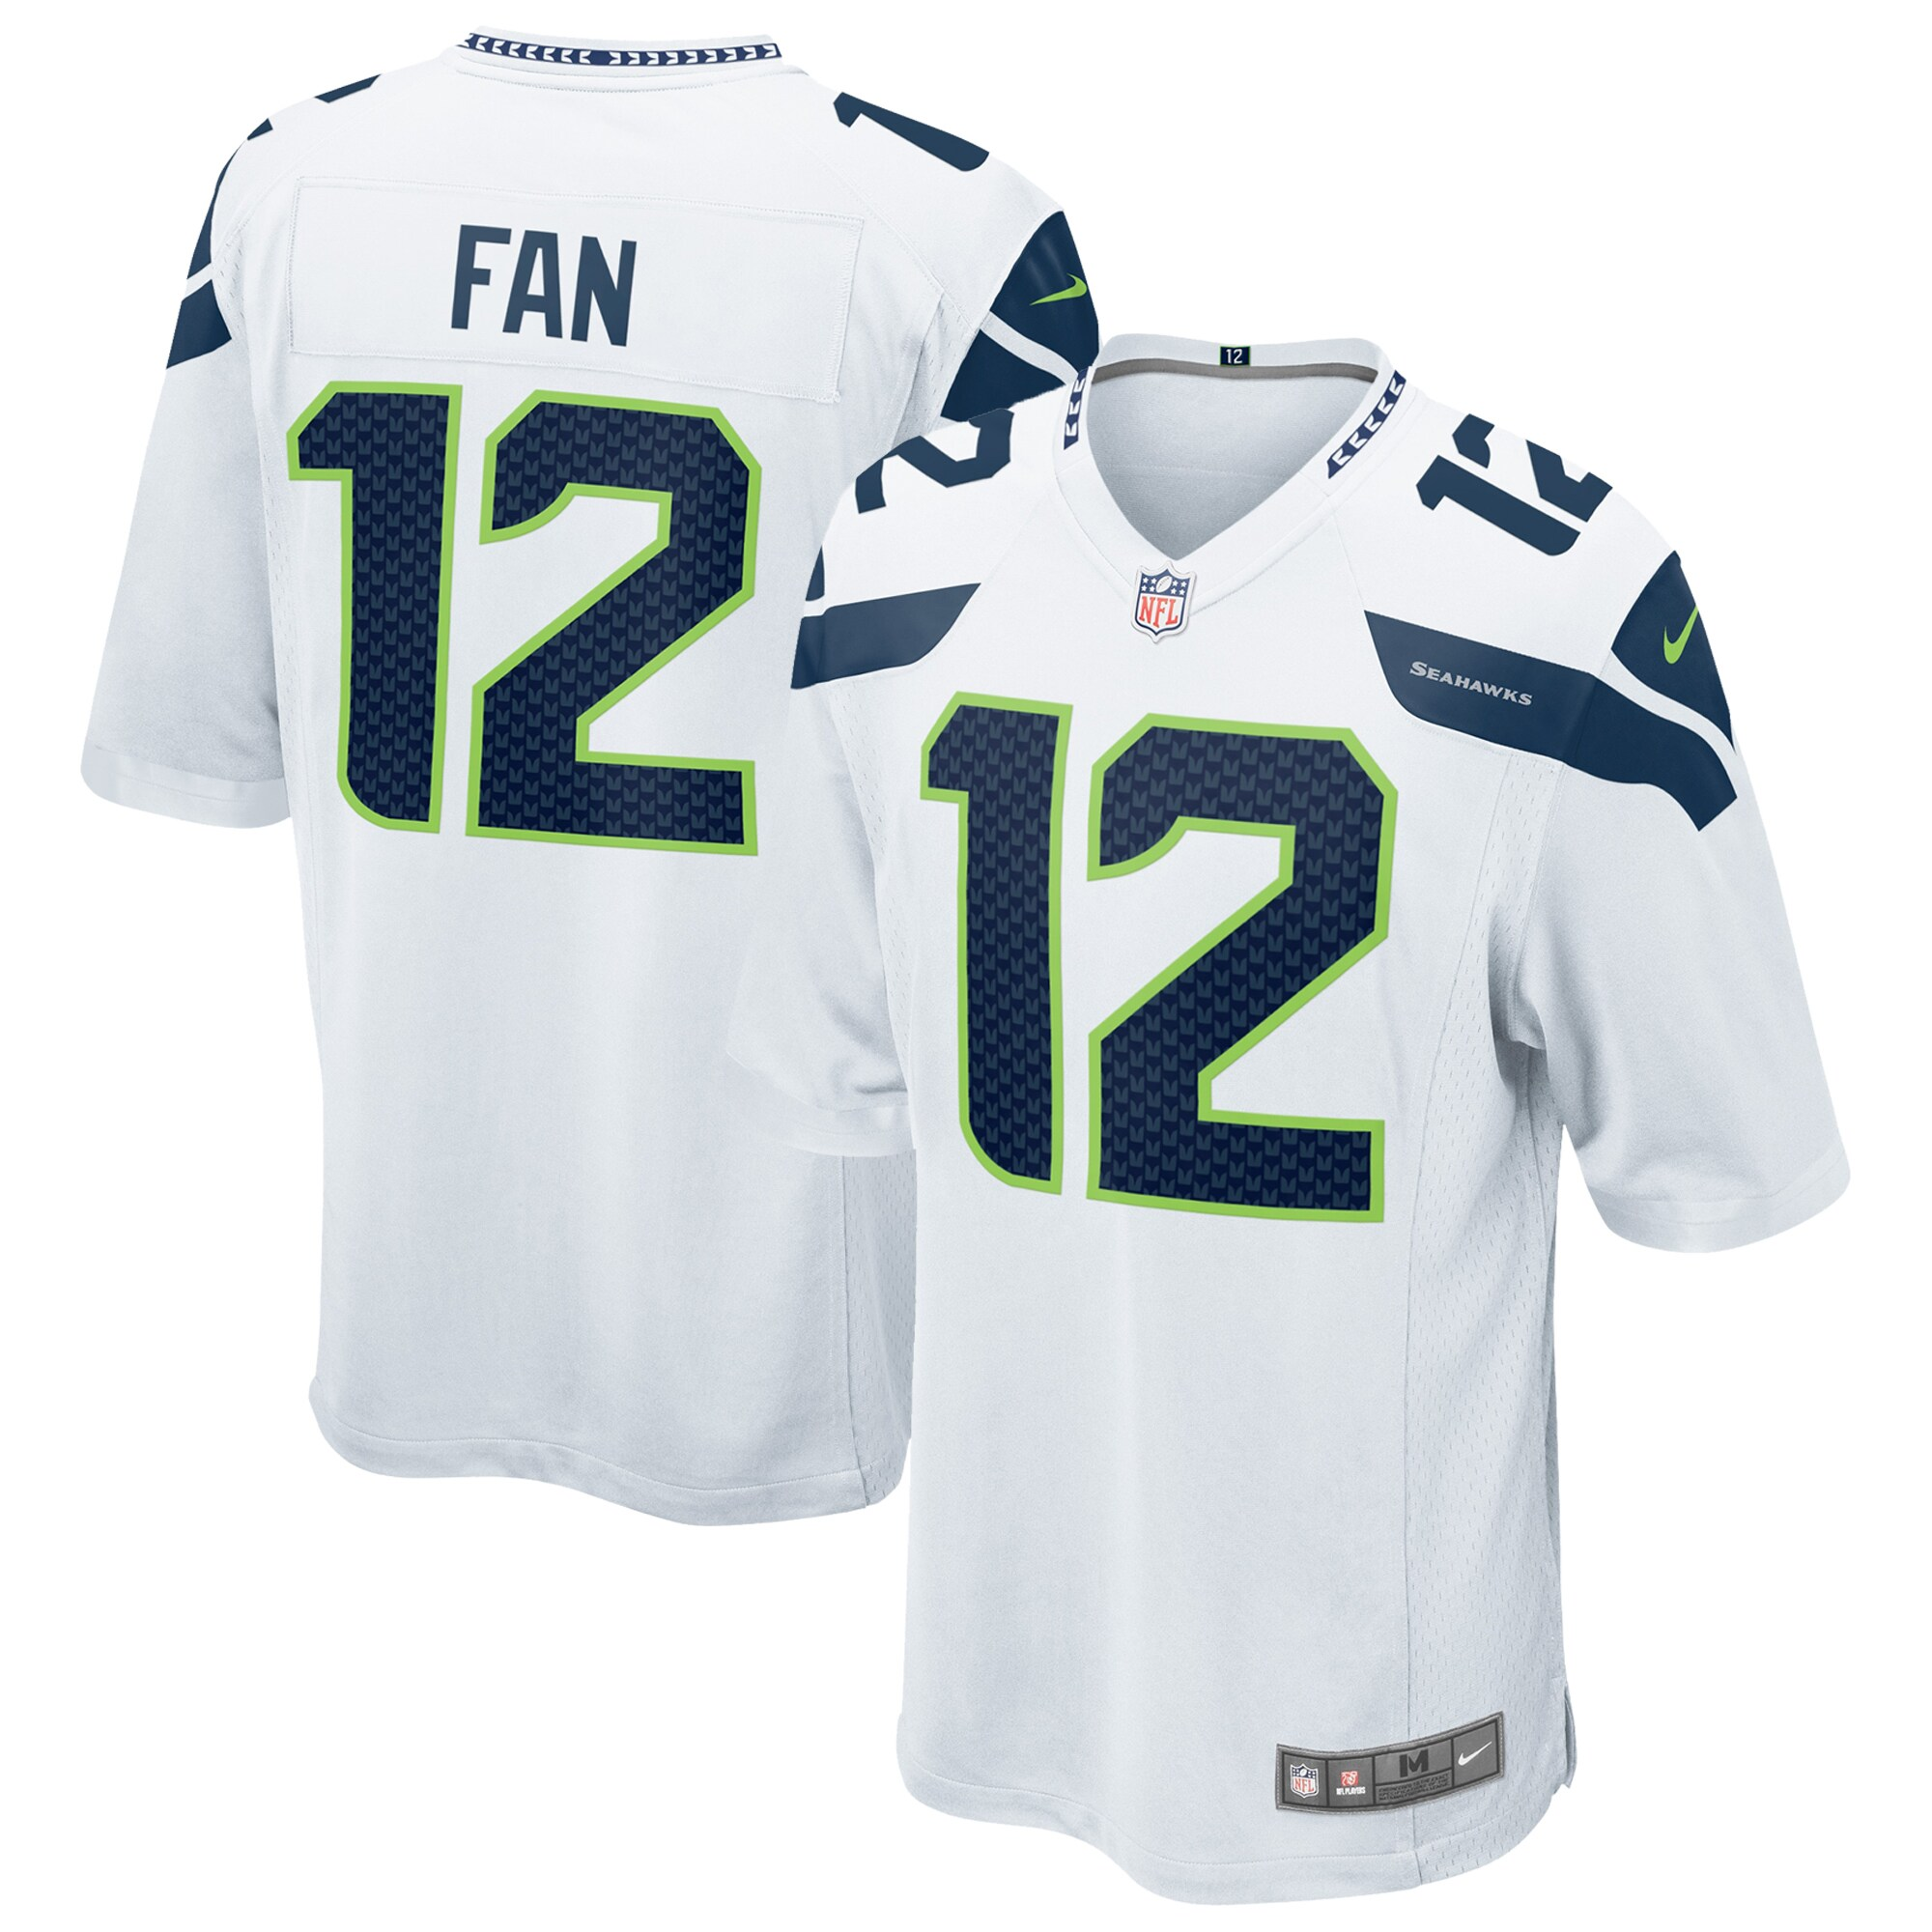 12s Seattle Seahawks Nike Youth Game Jersey - White